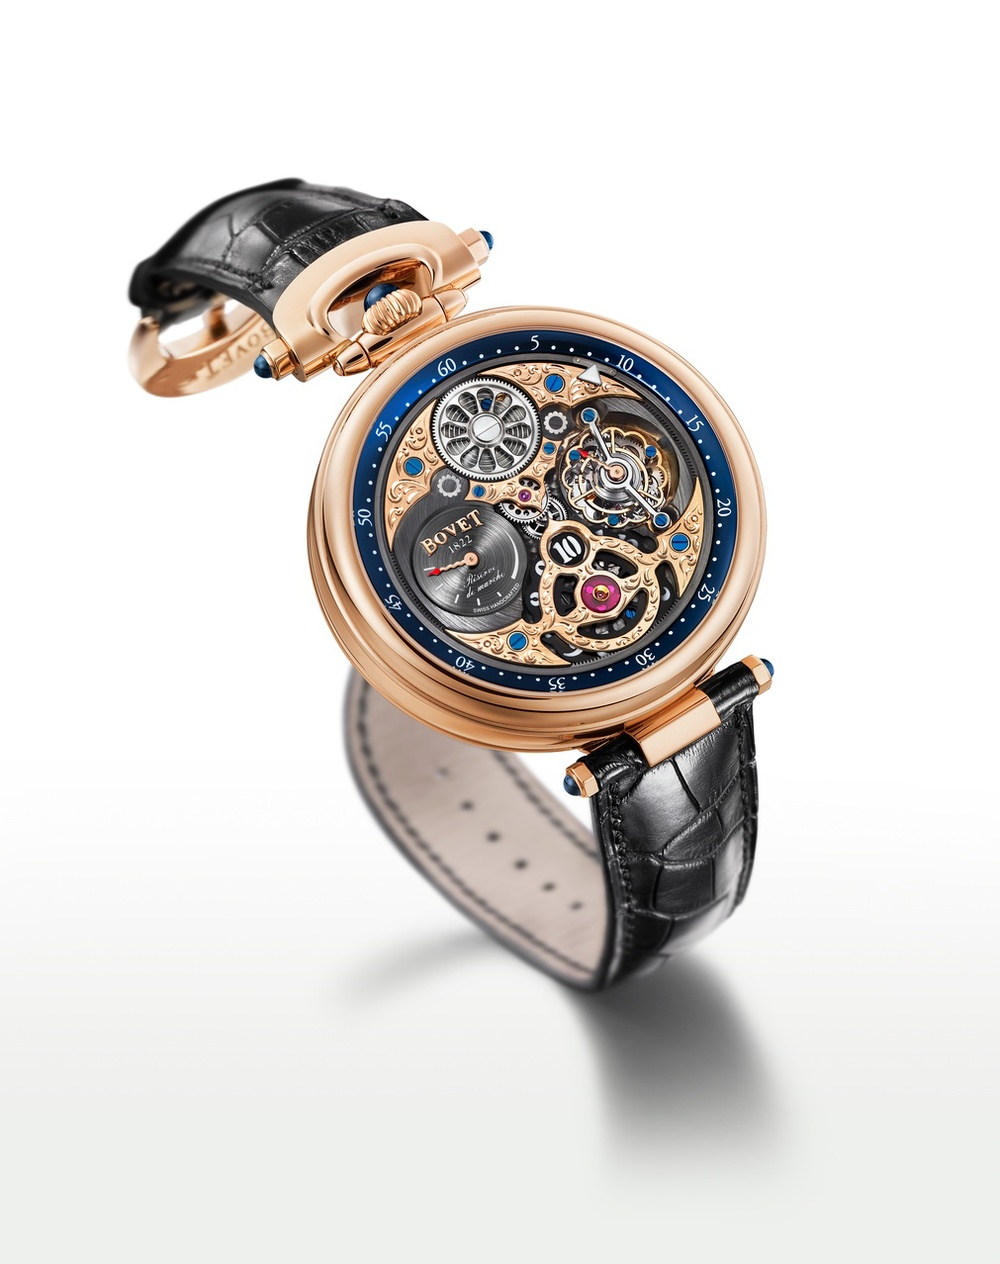 Bovet Watch Amadeo Fleurier Grandes Complications Ref. Nr. AIHS003 Call 312-944-3100 | For Availability